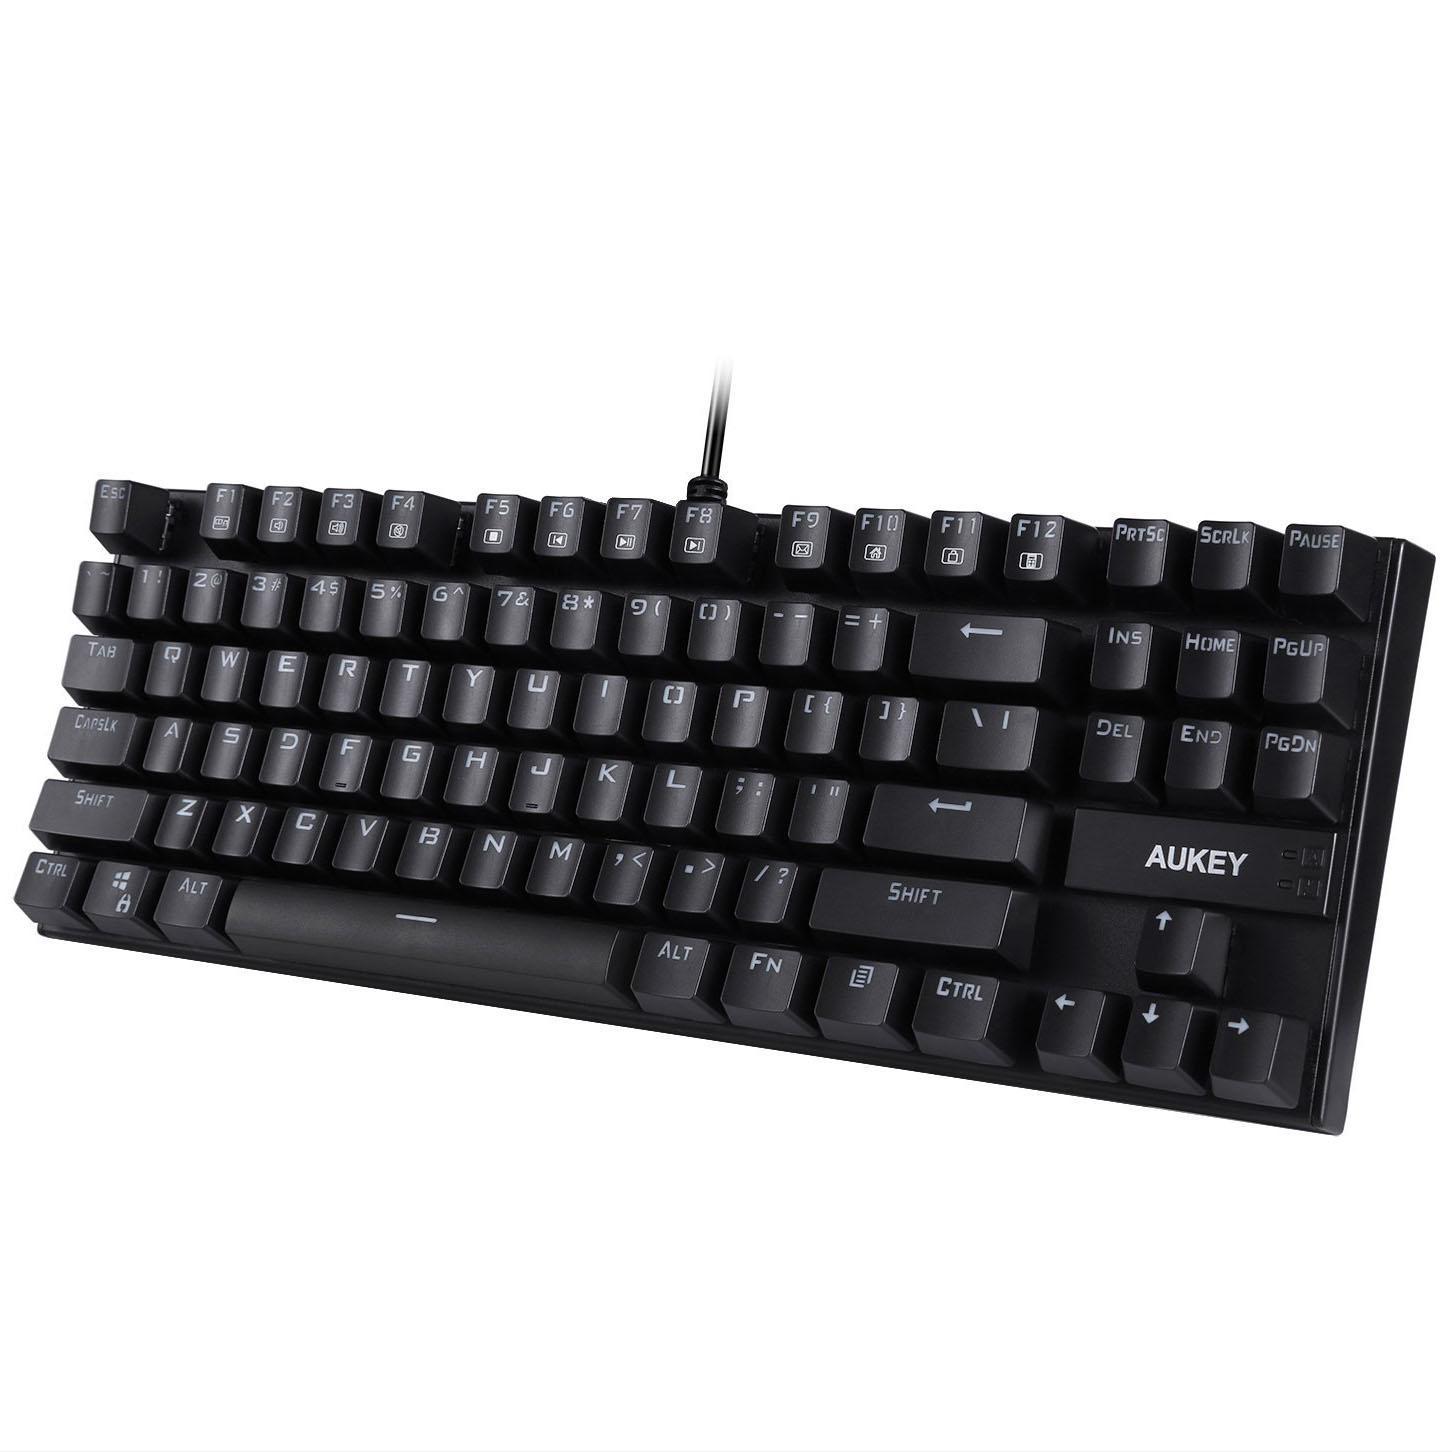 Aukey Mechanical Keyboard with Blue Switches for $20.09 Shipped